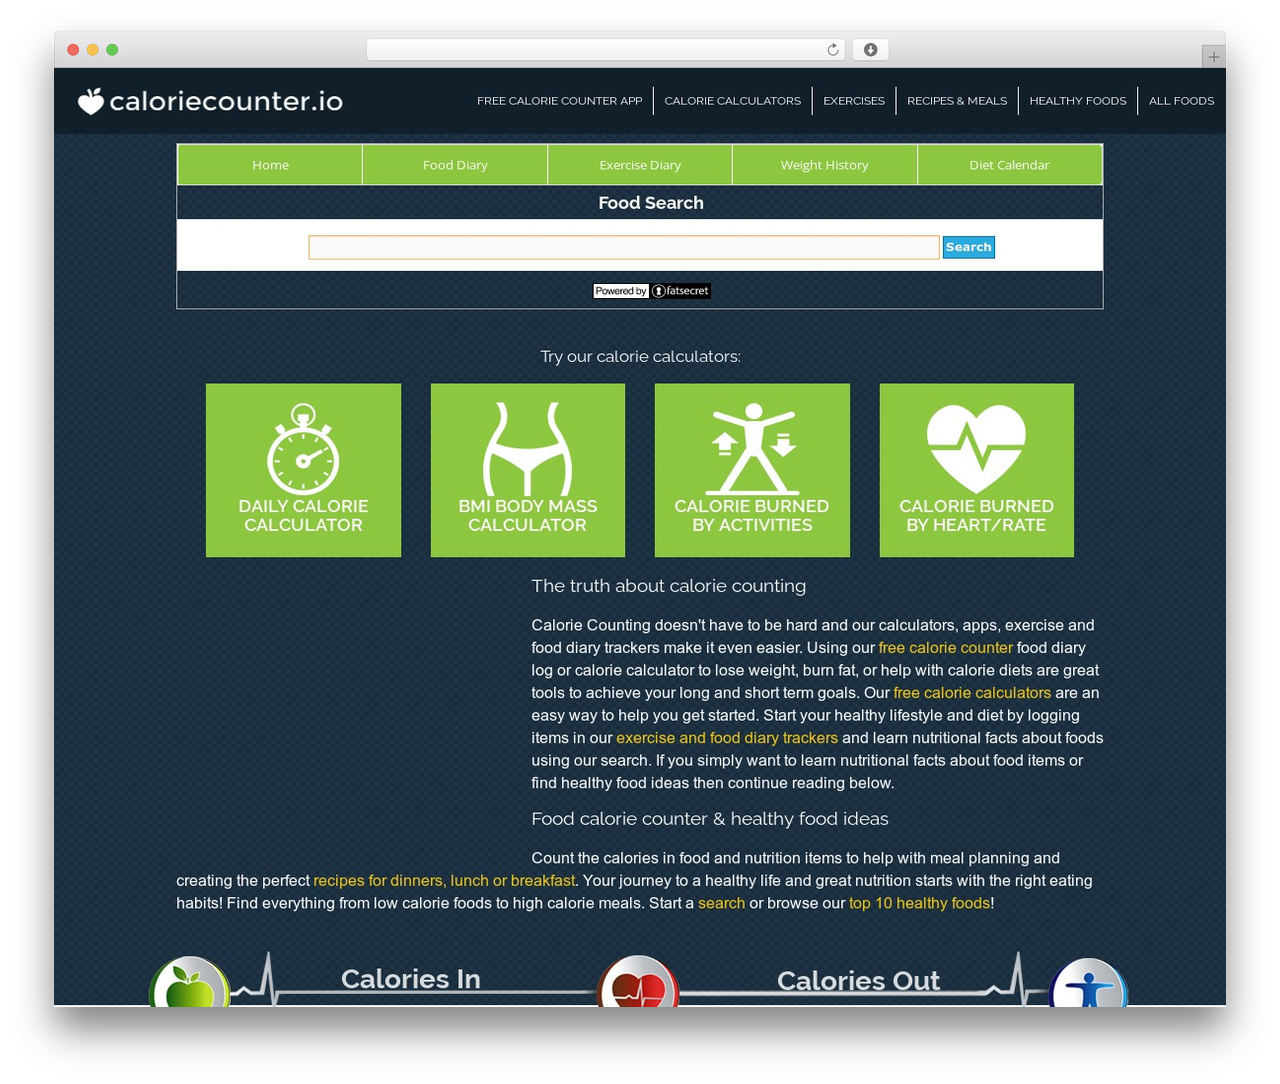 Best Wordpress Template Adam - Eve - Caloriecounter.io